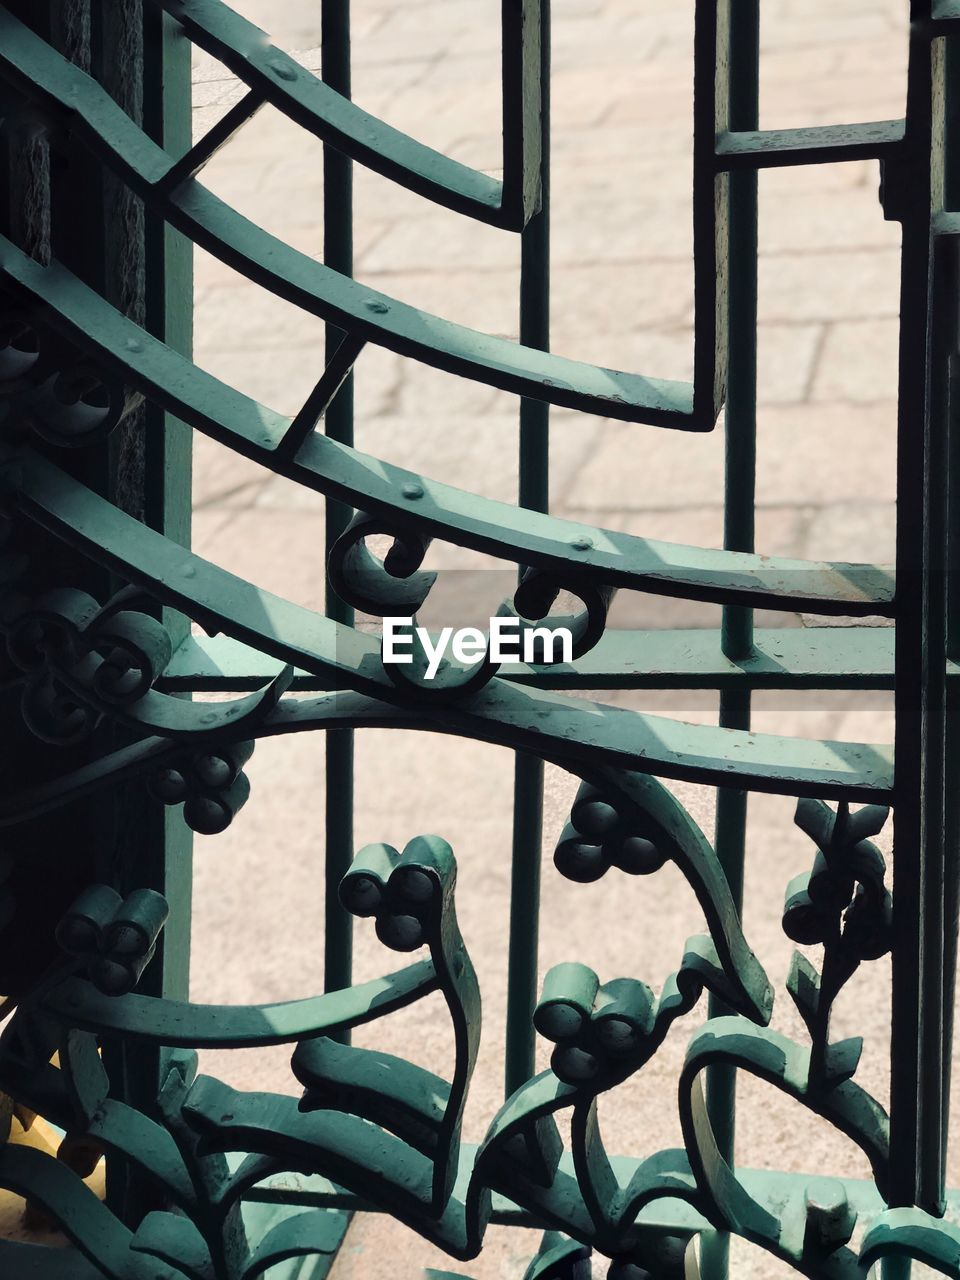 metal, no people, close-up, grid, pattern, day, gate, security, focus on foreground, safety, protection, wrought iron, full frame, railing, metal grate, outdoors, grate, strength, entrance, iron - metal